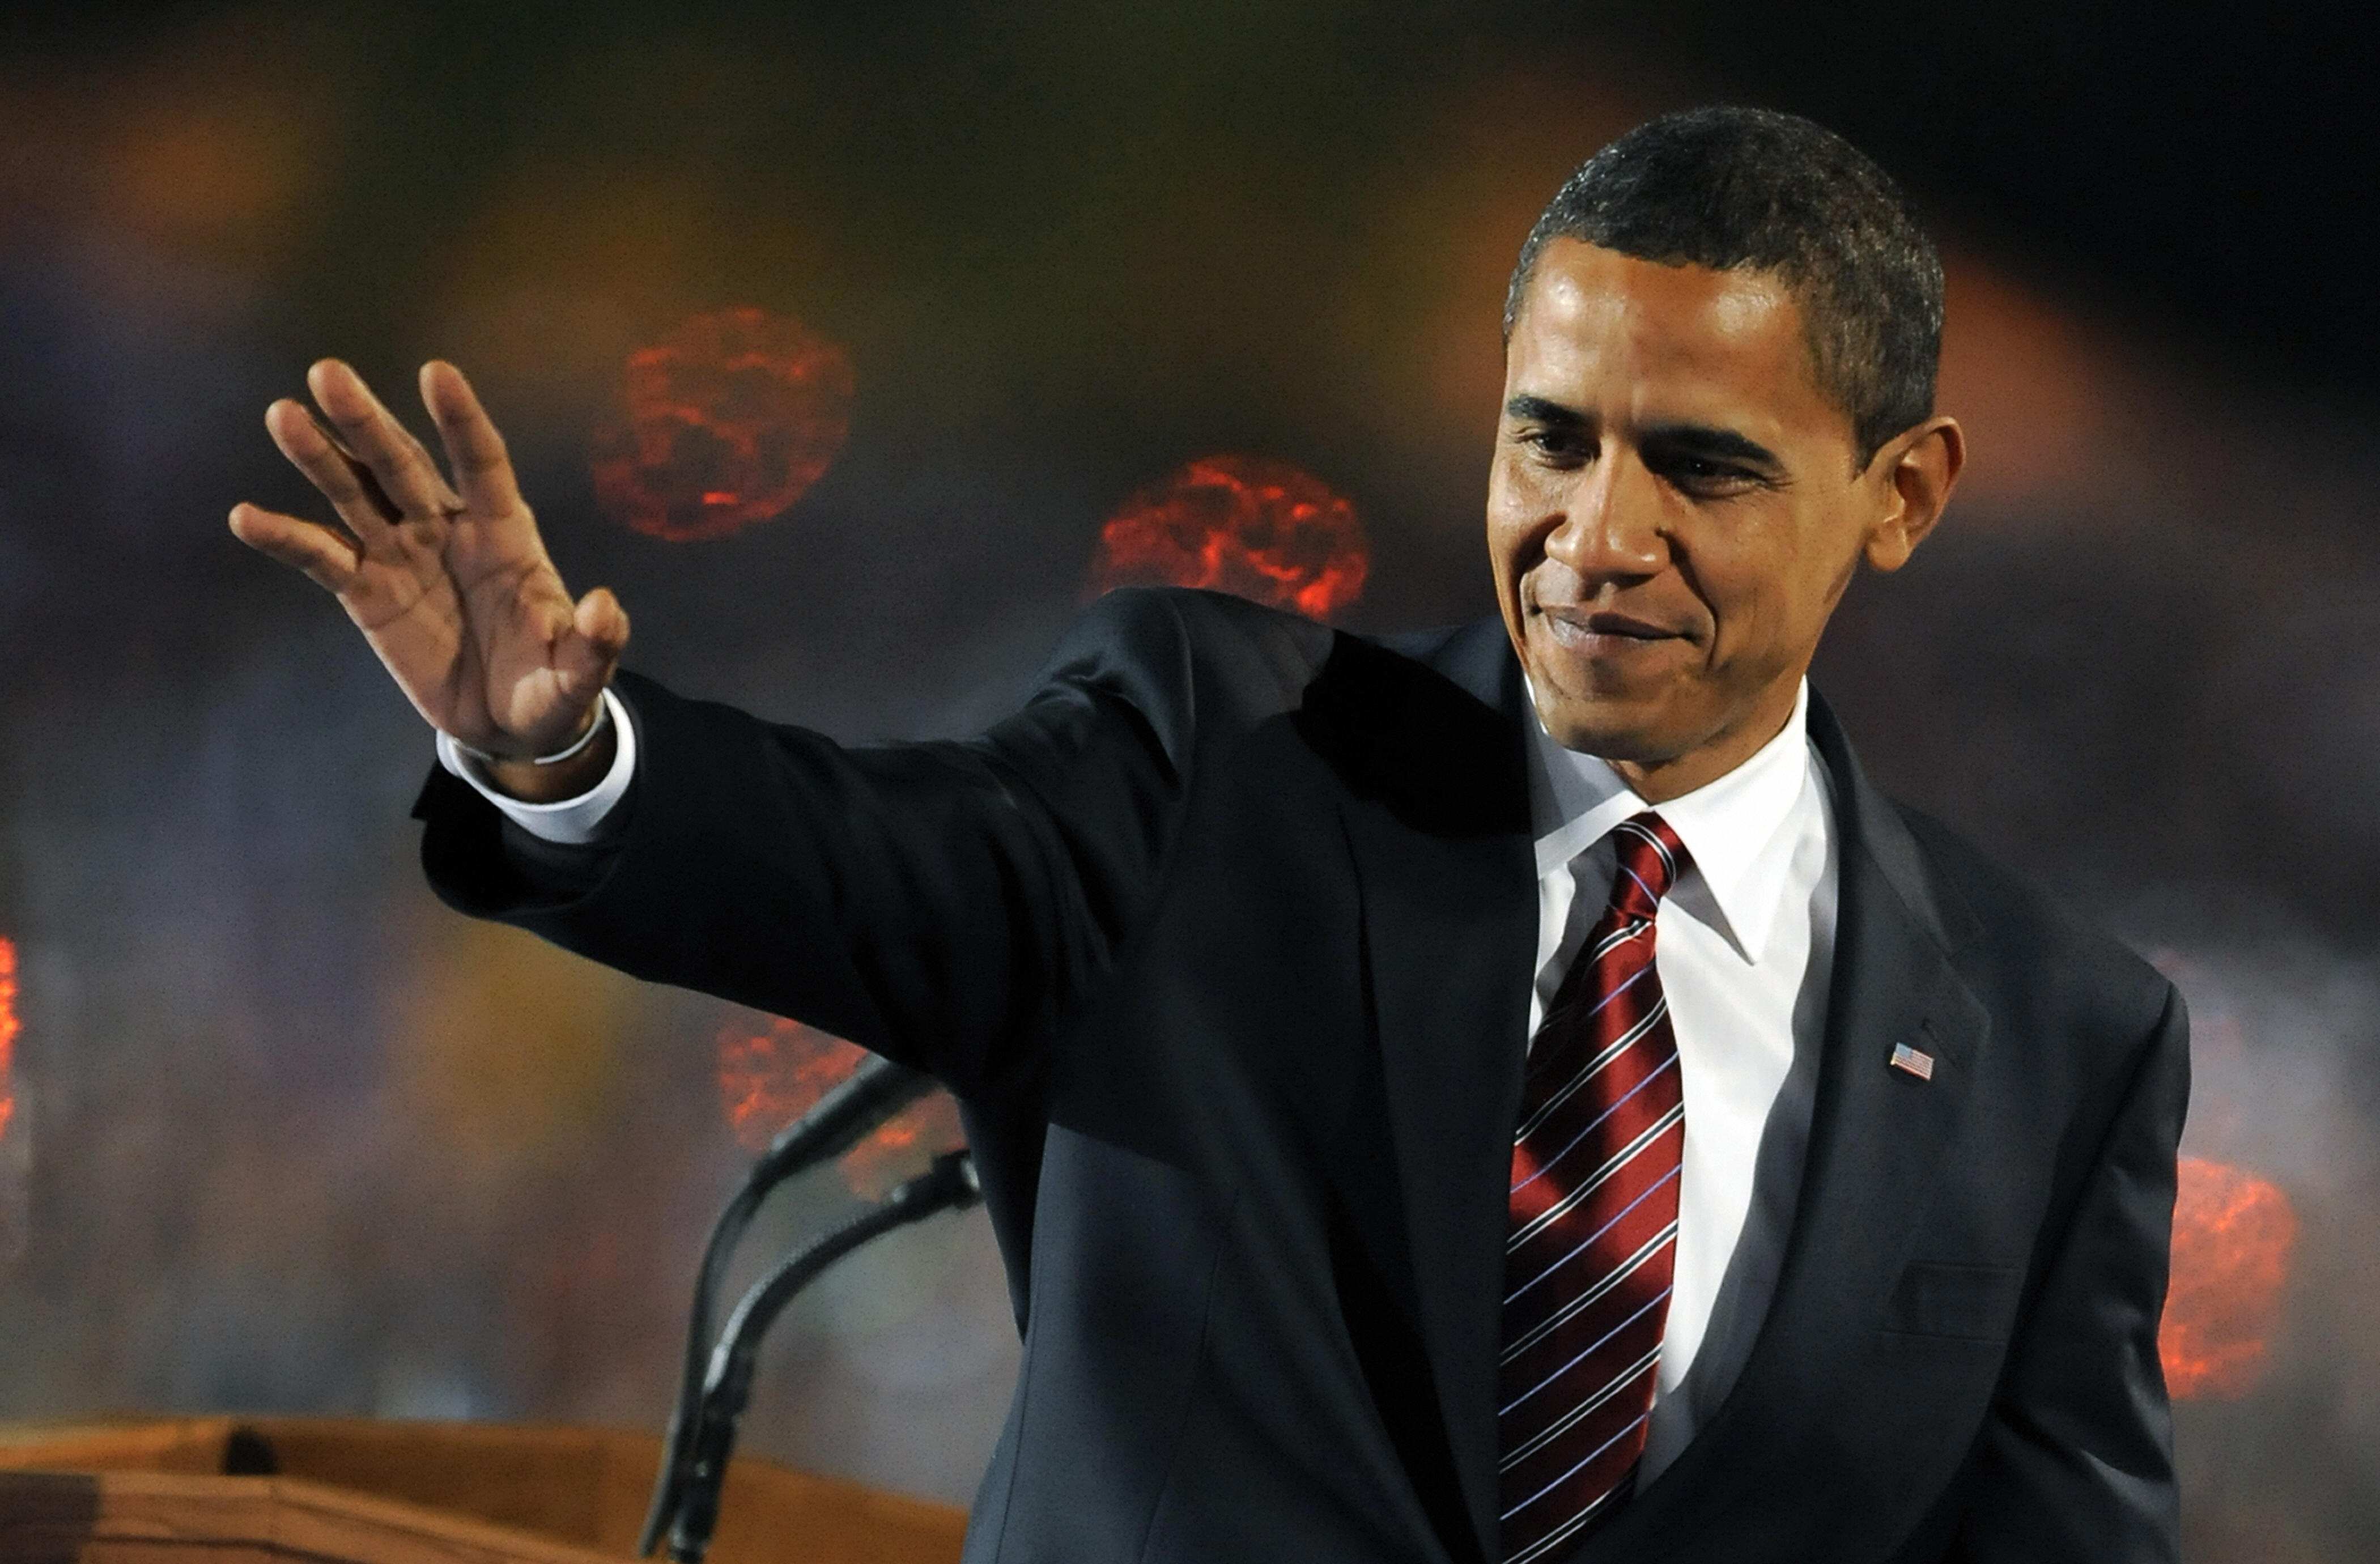 US president-elect Barack Obama waving at his supporters.